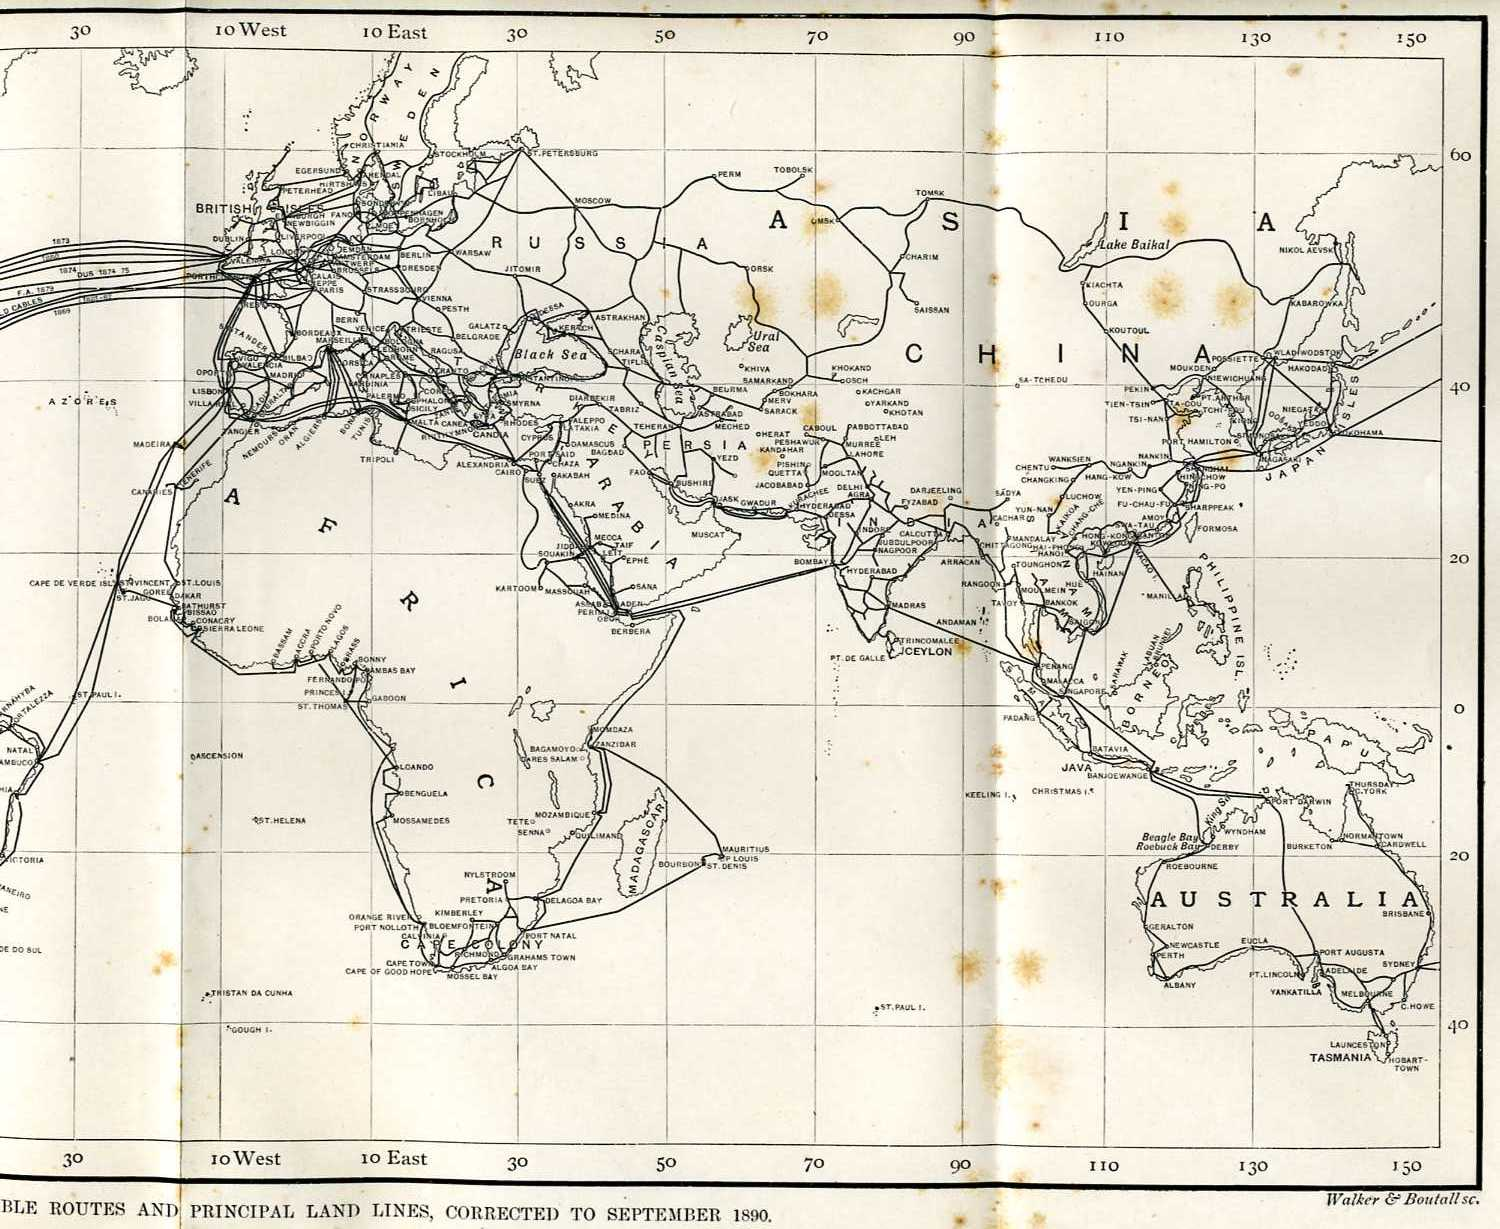 cable routes - East, 1890